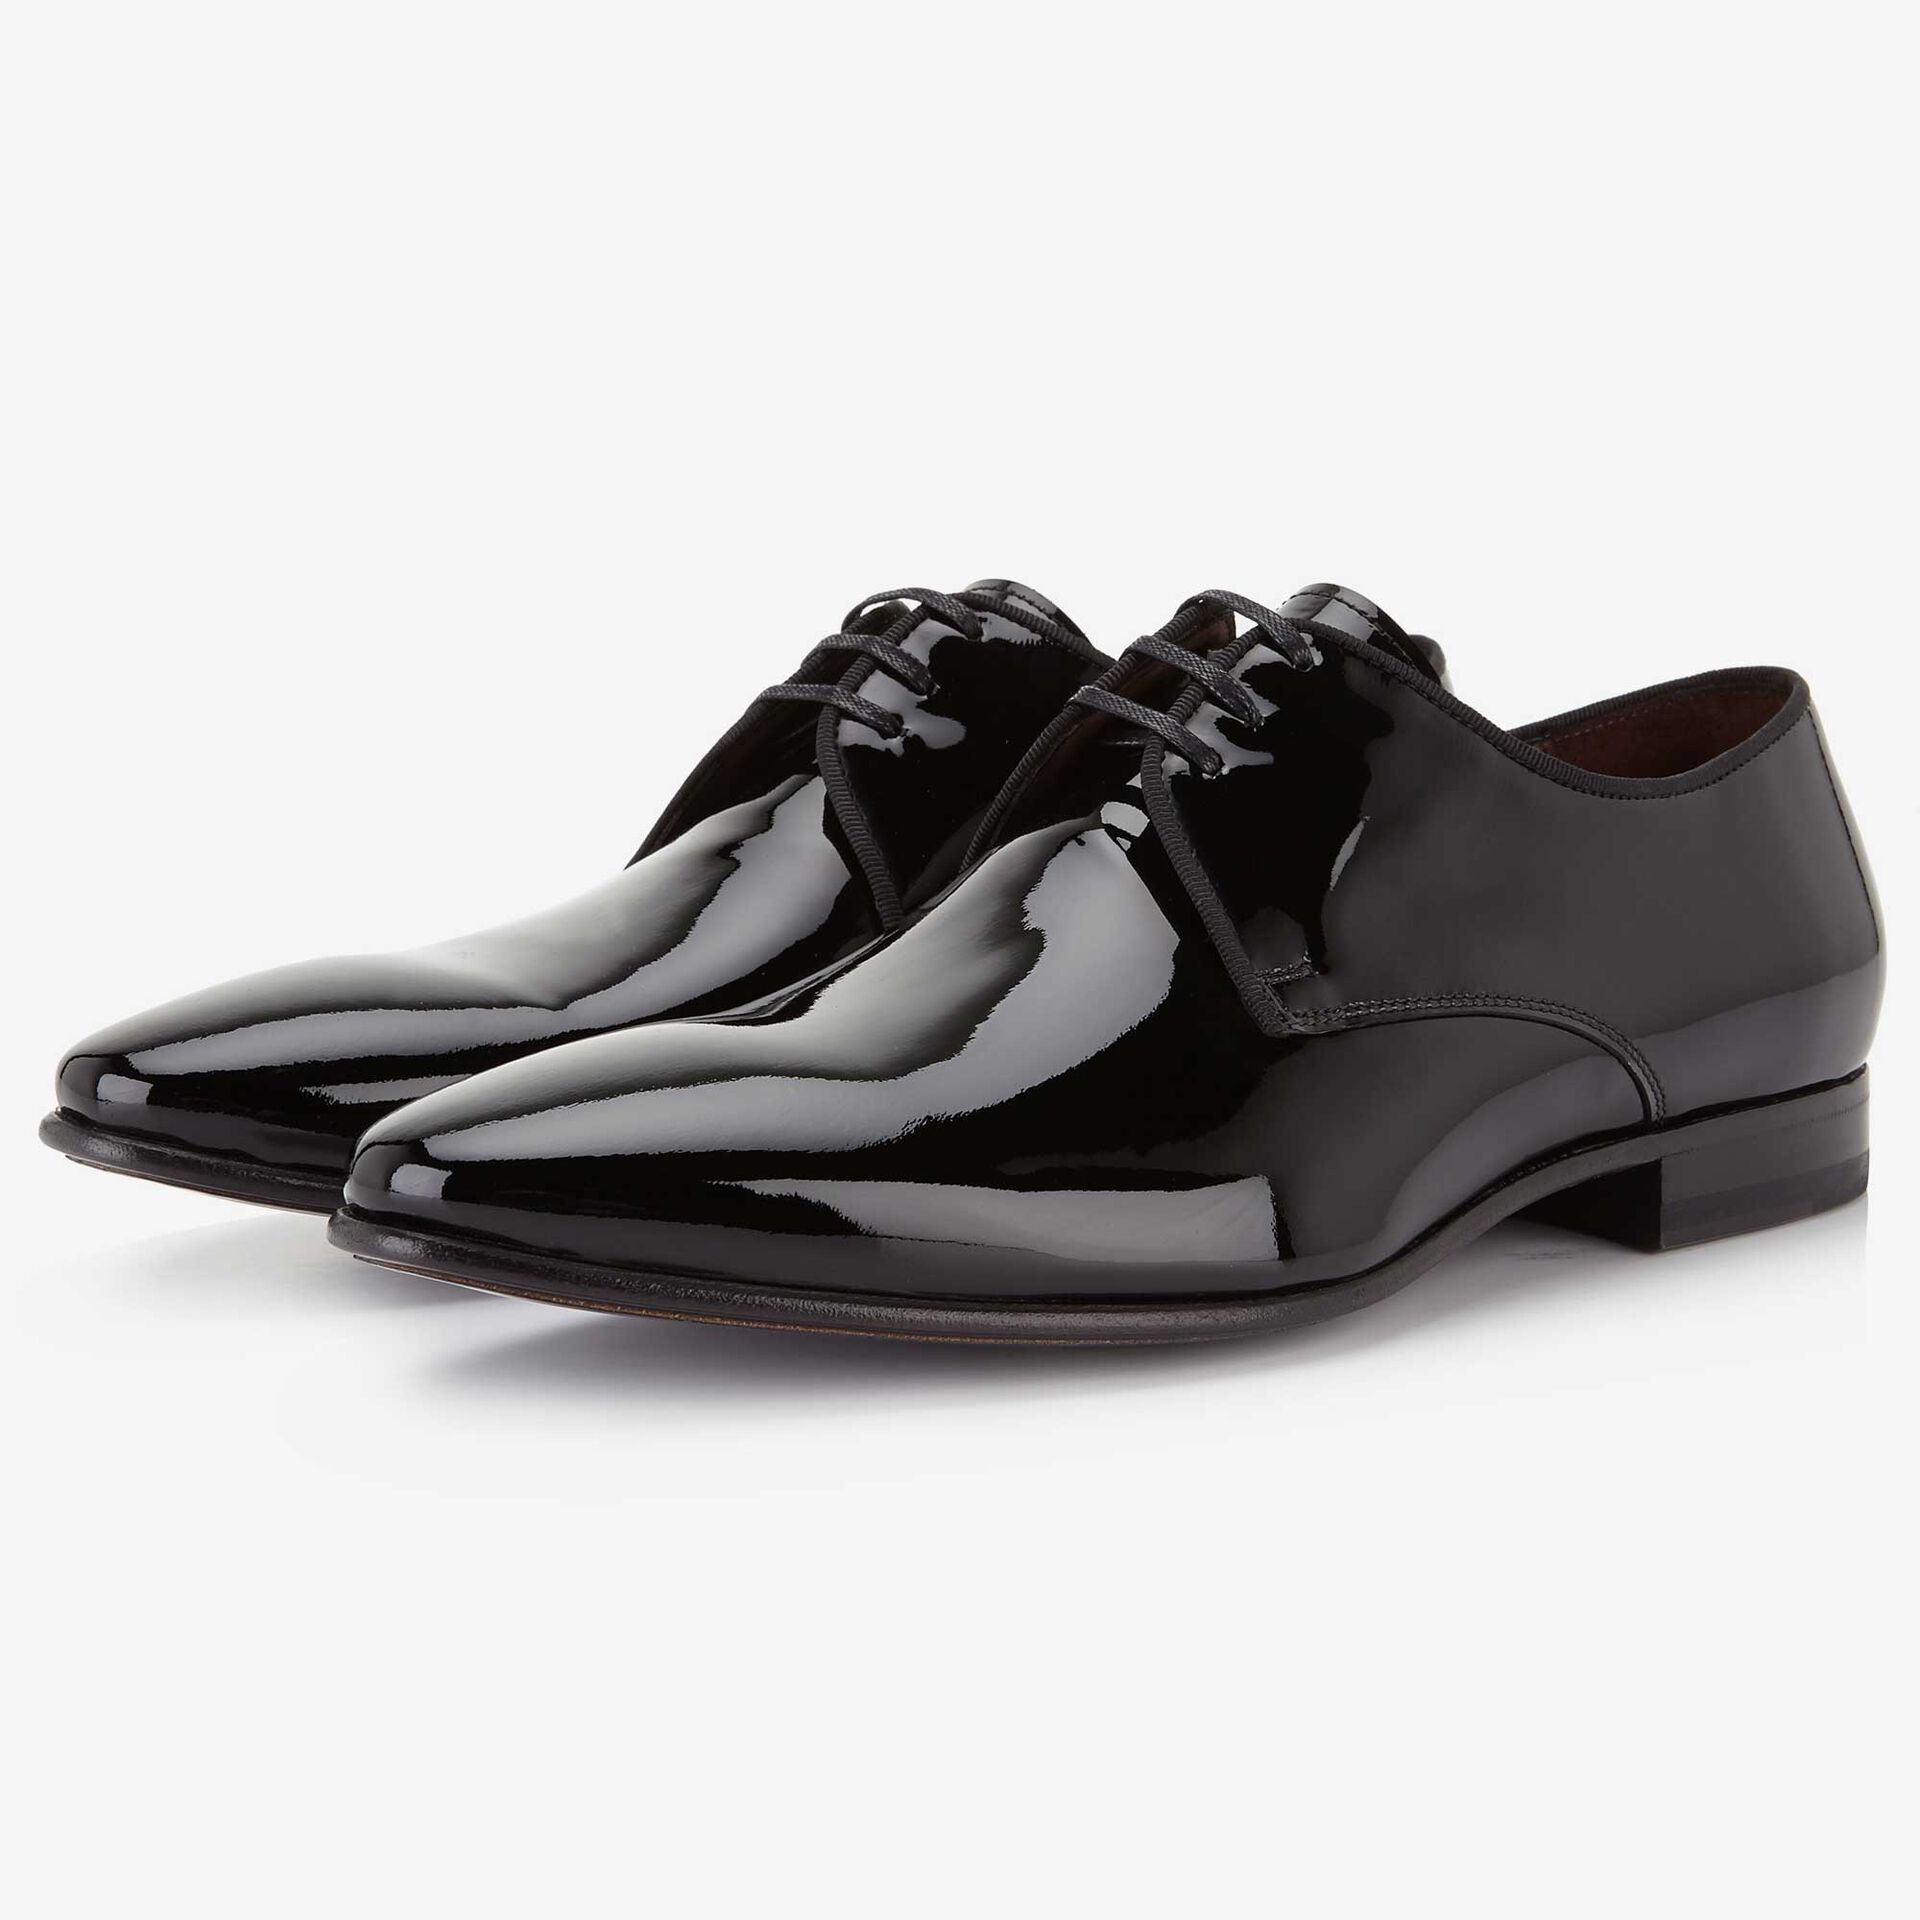 Floris van Bommel black patent leather men's lace-up shoe